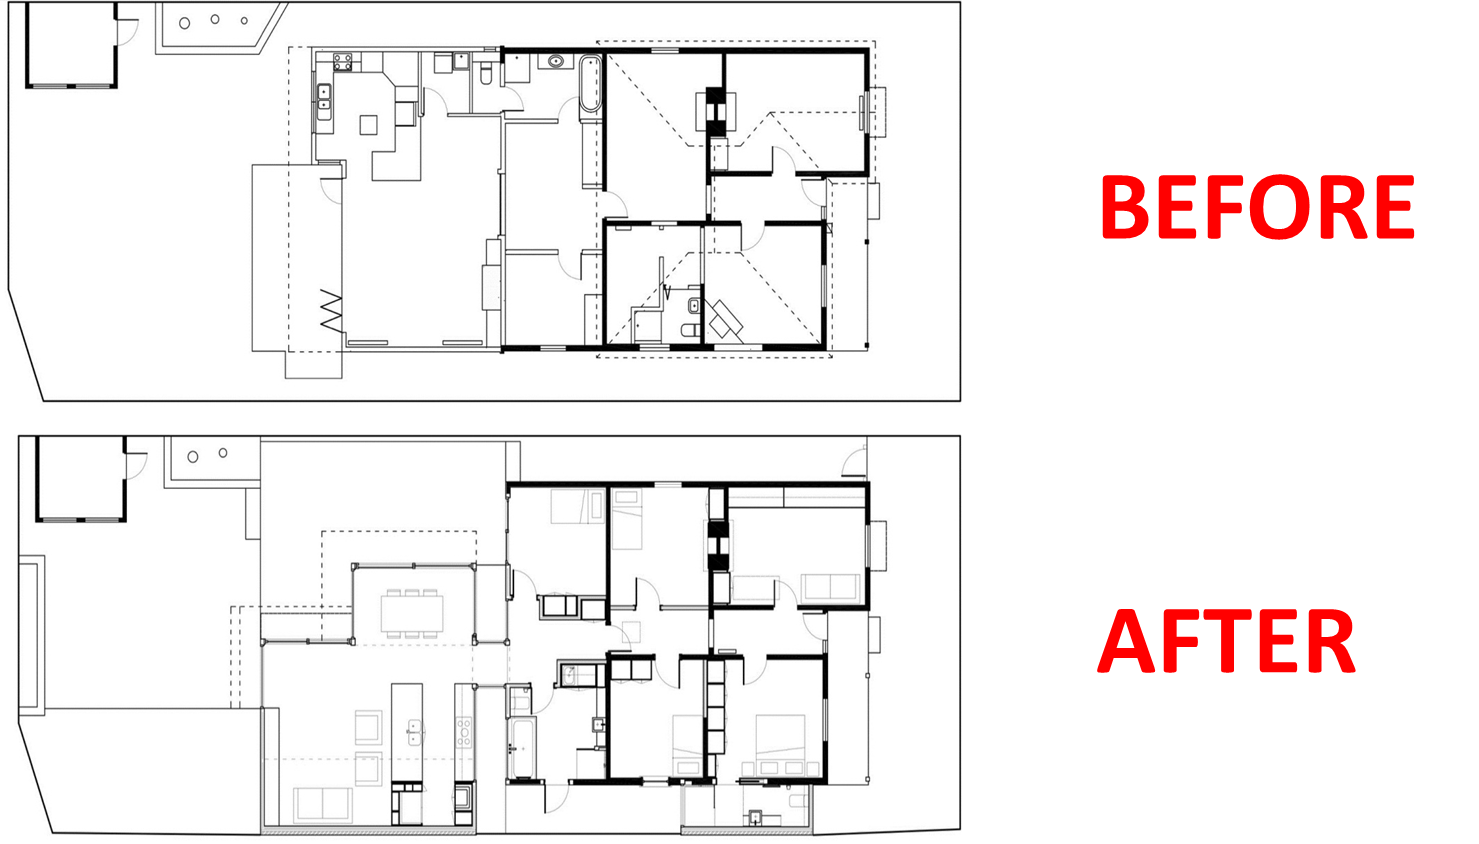 Exquisite home remodeling plans. Drawing bathroom remodel clip library